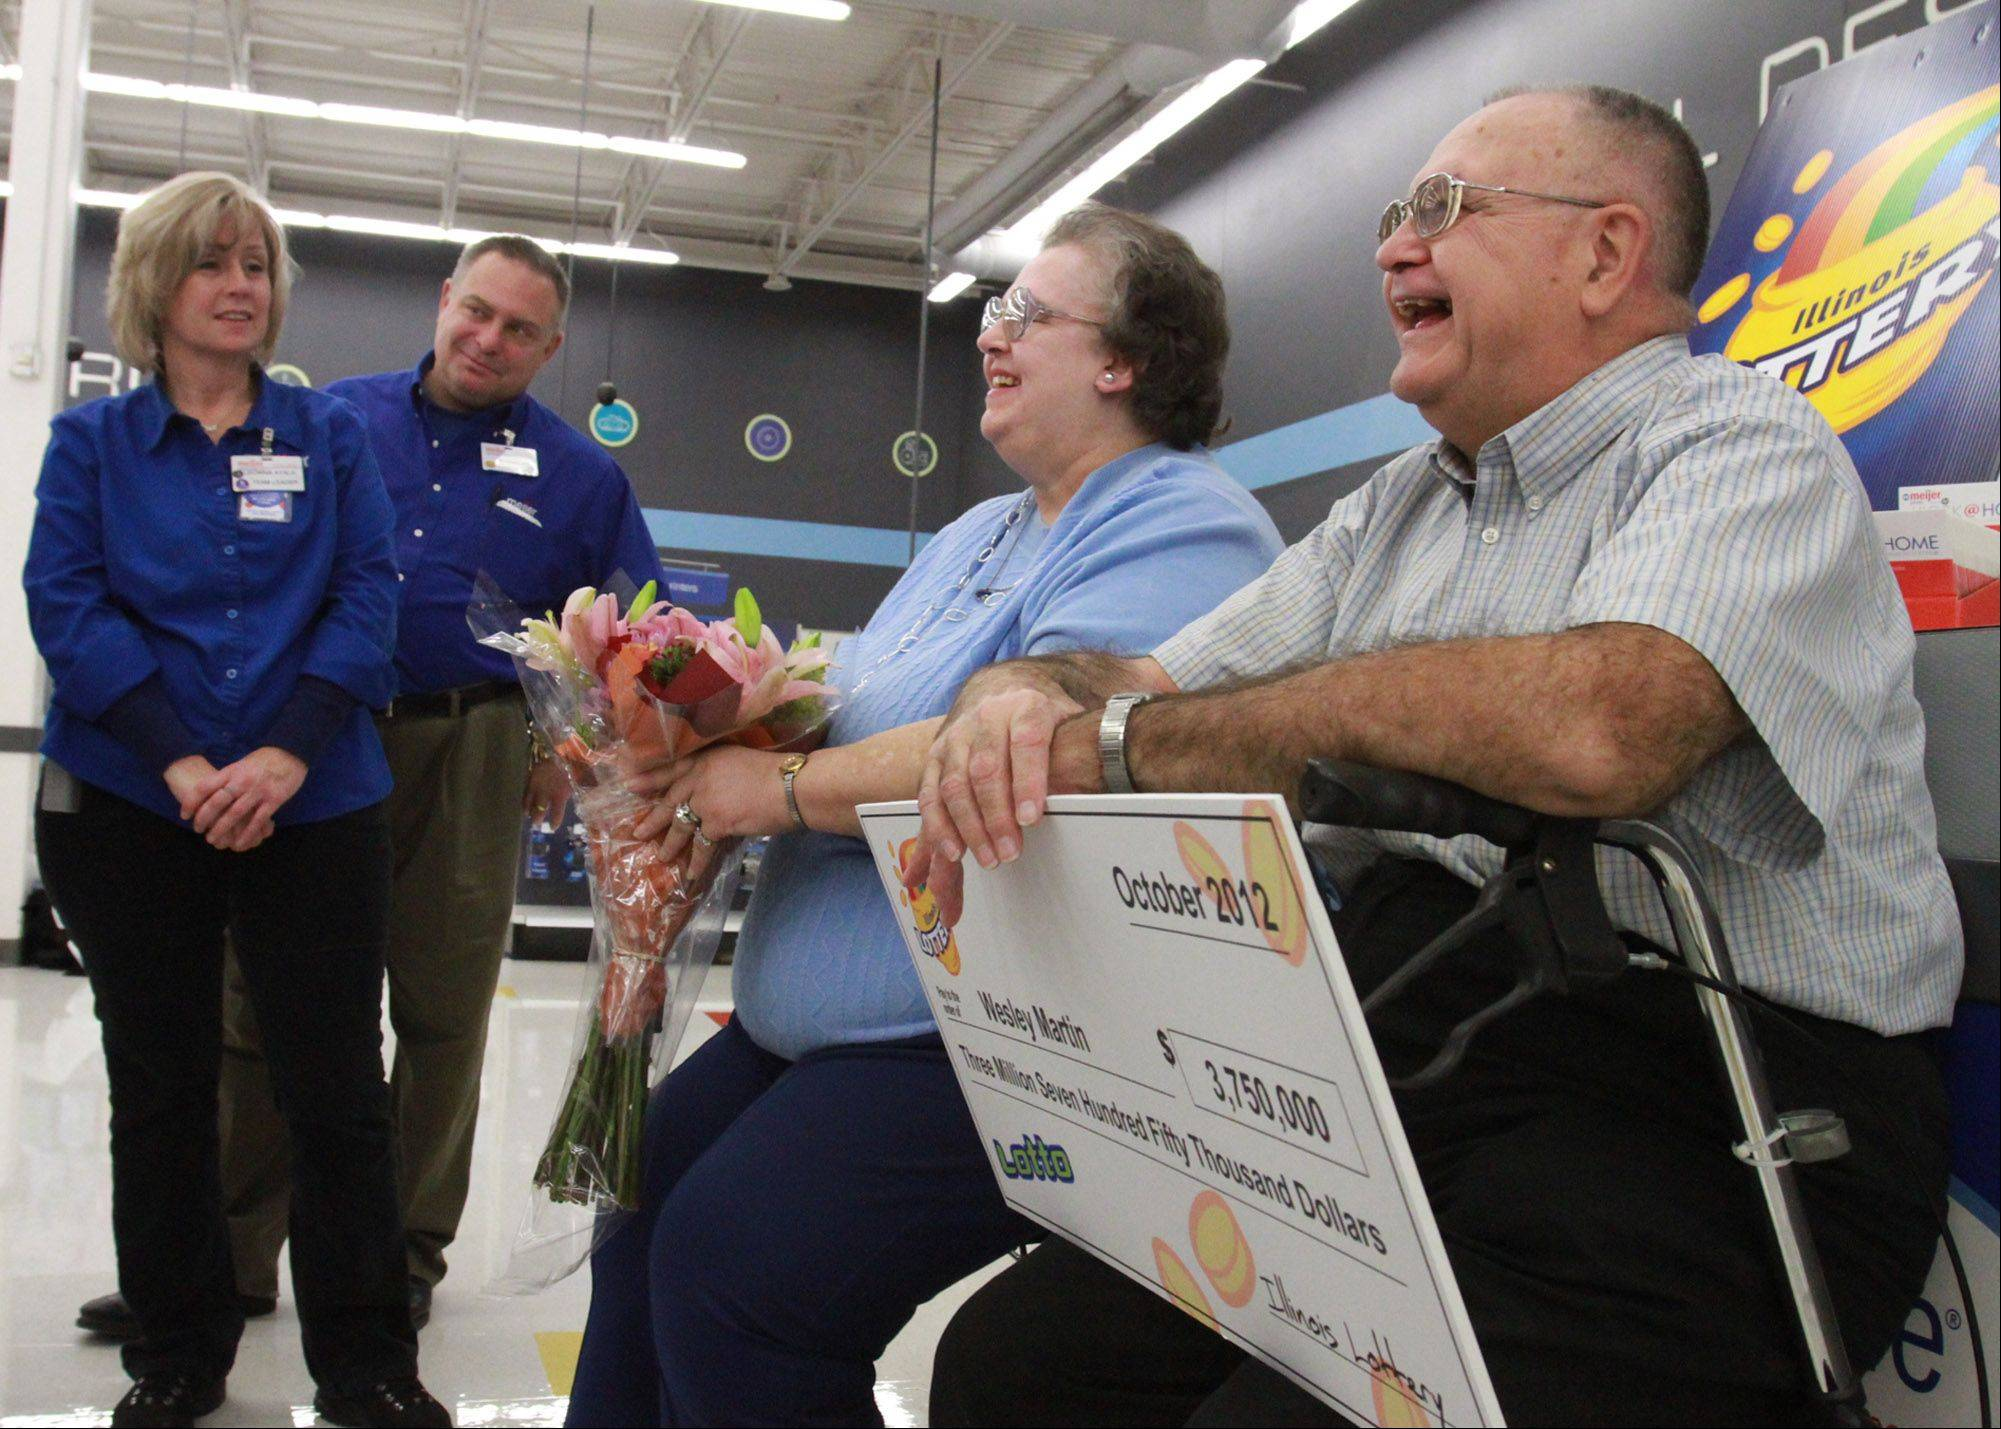 Margaret and Wesley Martin of Palatine celebrate getting their $3.75 million check from the Illinois Lottery on Thursday with employees at Meijer in Rolling Meadows.